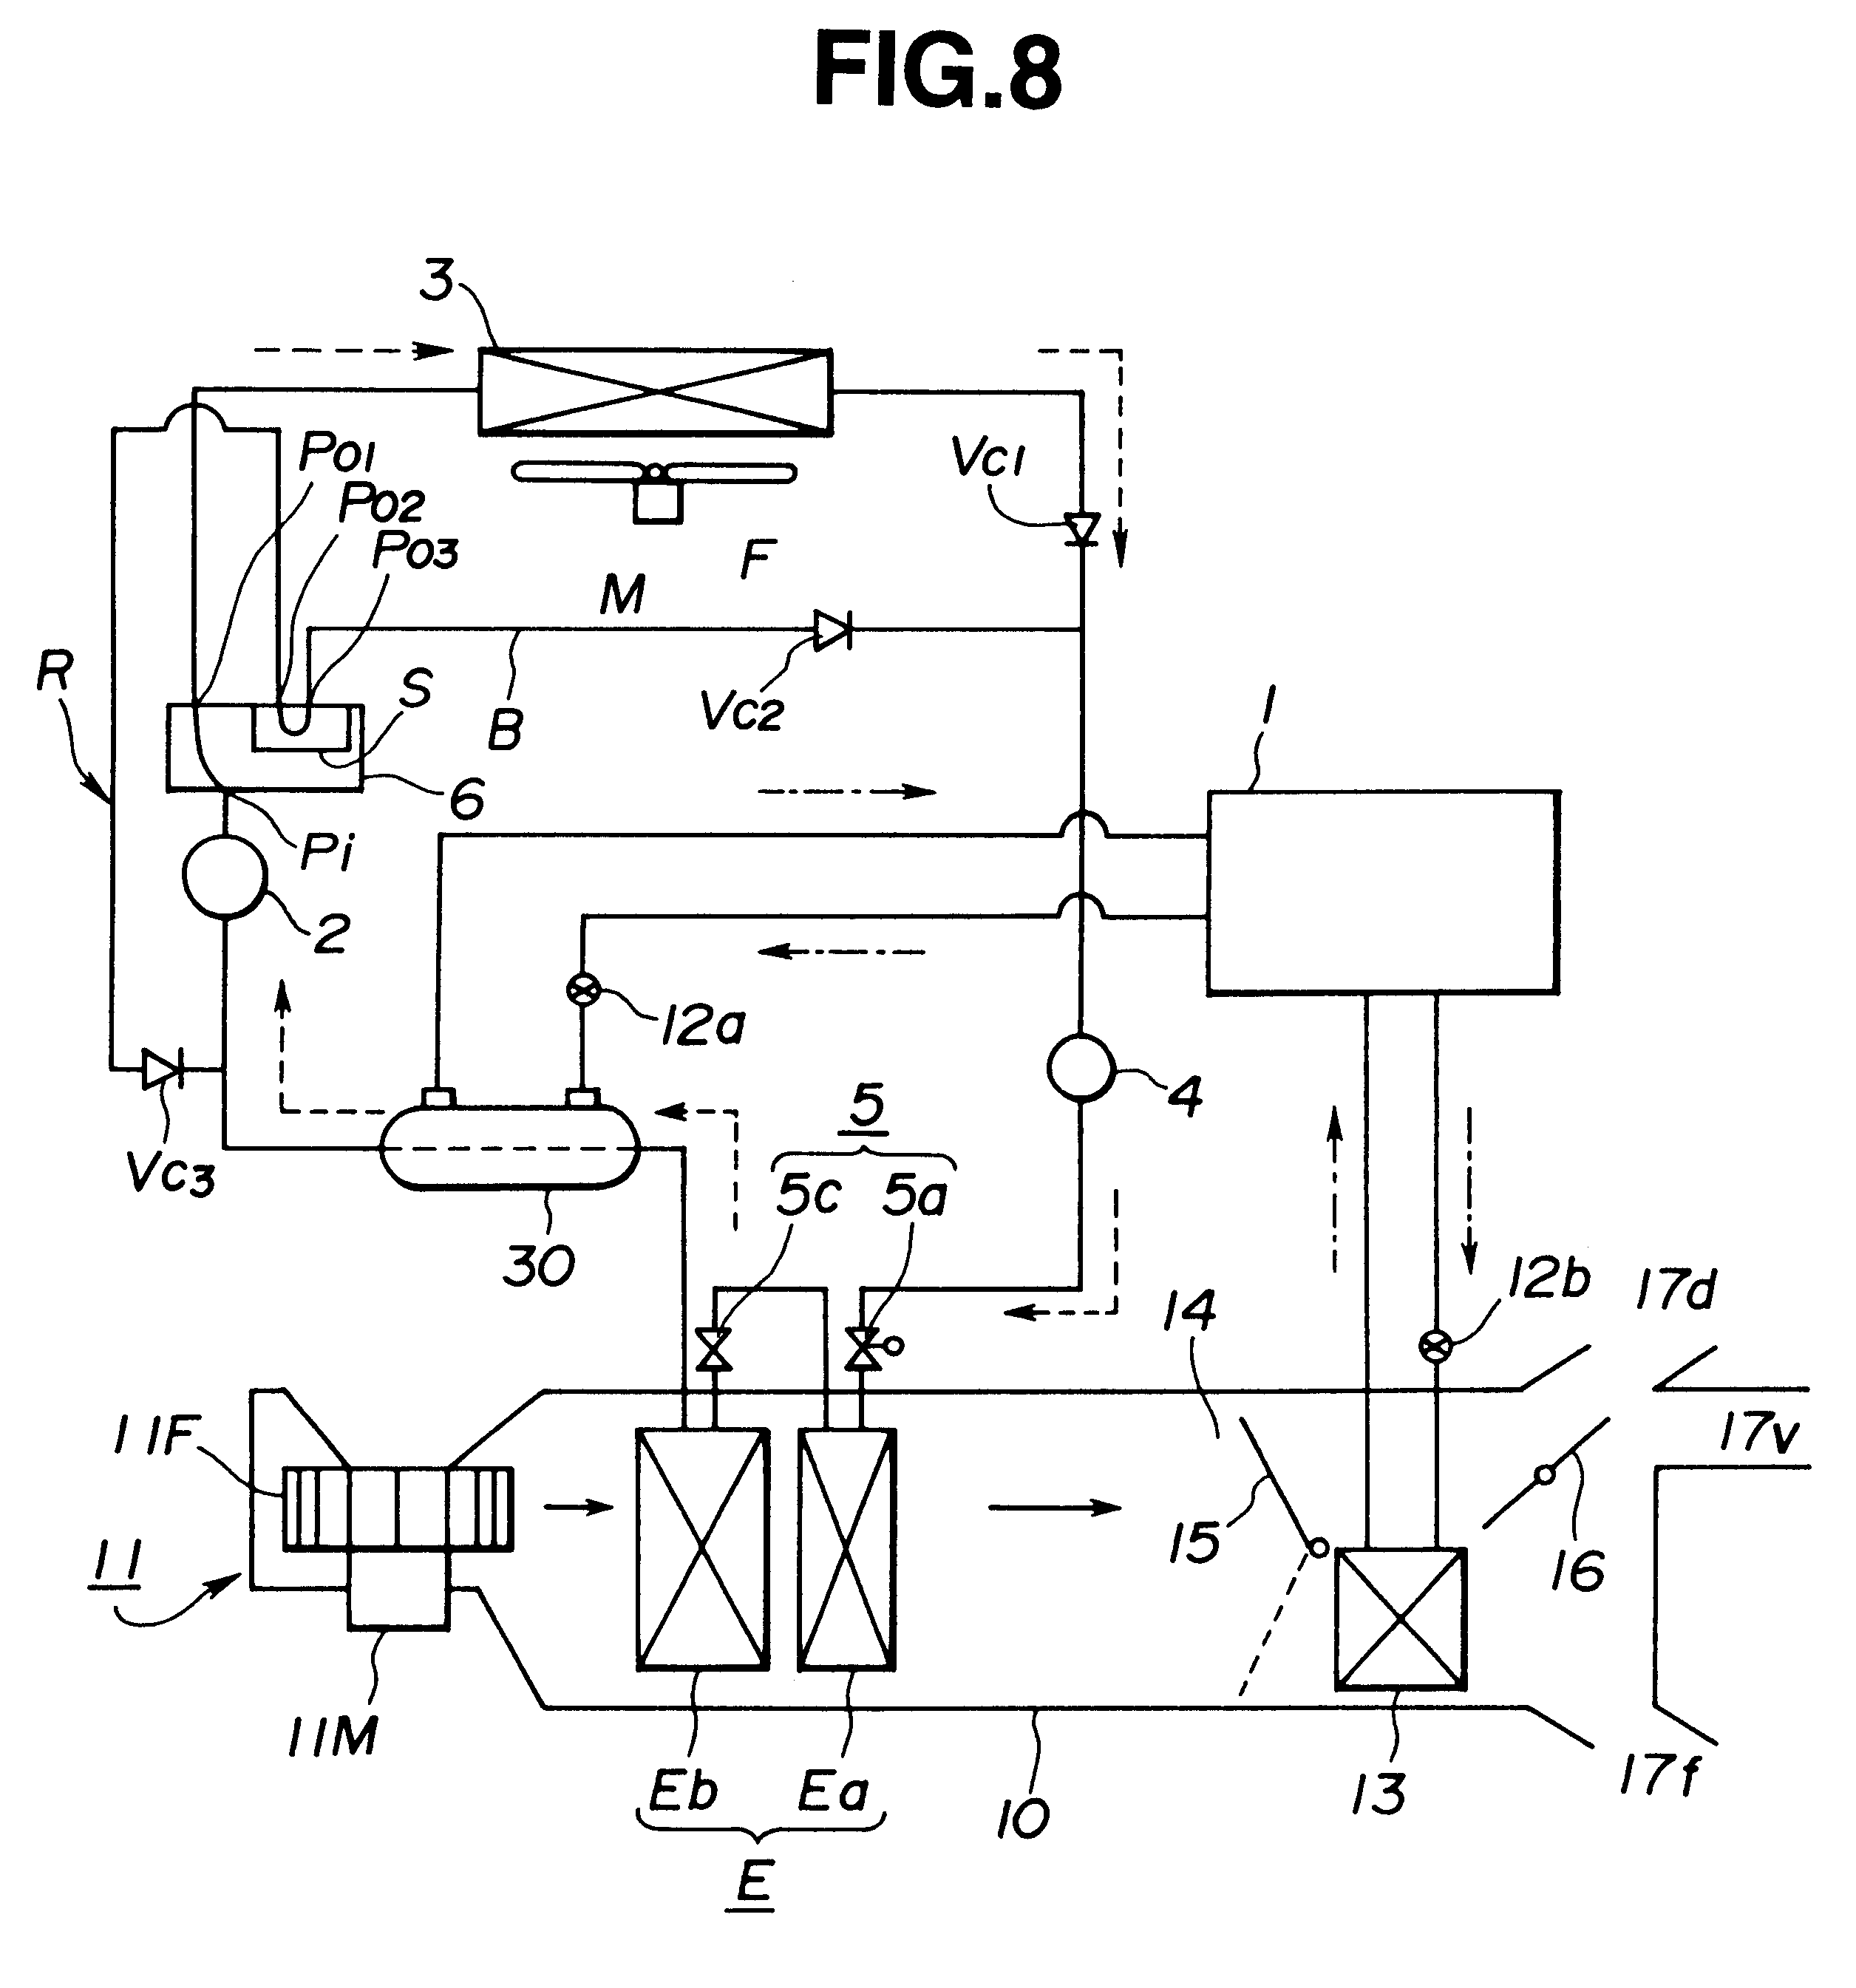 Electrical Wiring Diagrams For Air Conditioning moreover Air Cooled Engine Fan in addition Hvactechhangout in addition RV Fridge likewise Air Refrigeration Cycle Pdf. on heat pump and refrigeration cycle